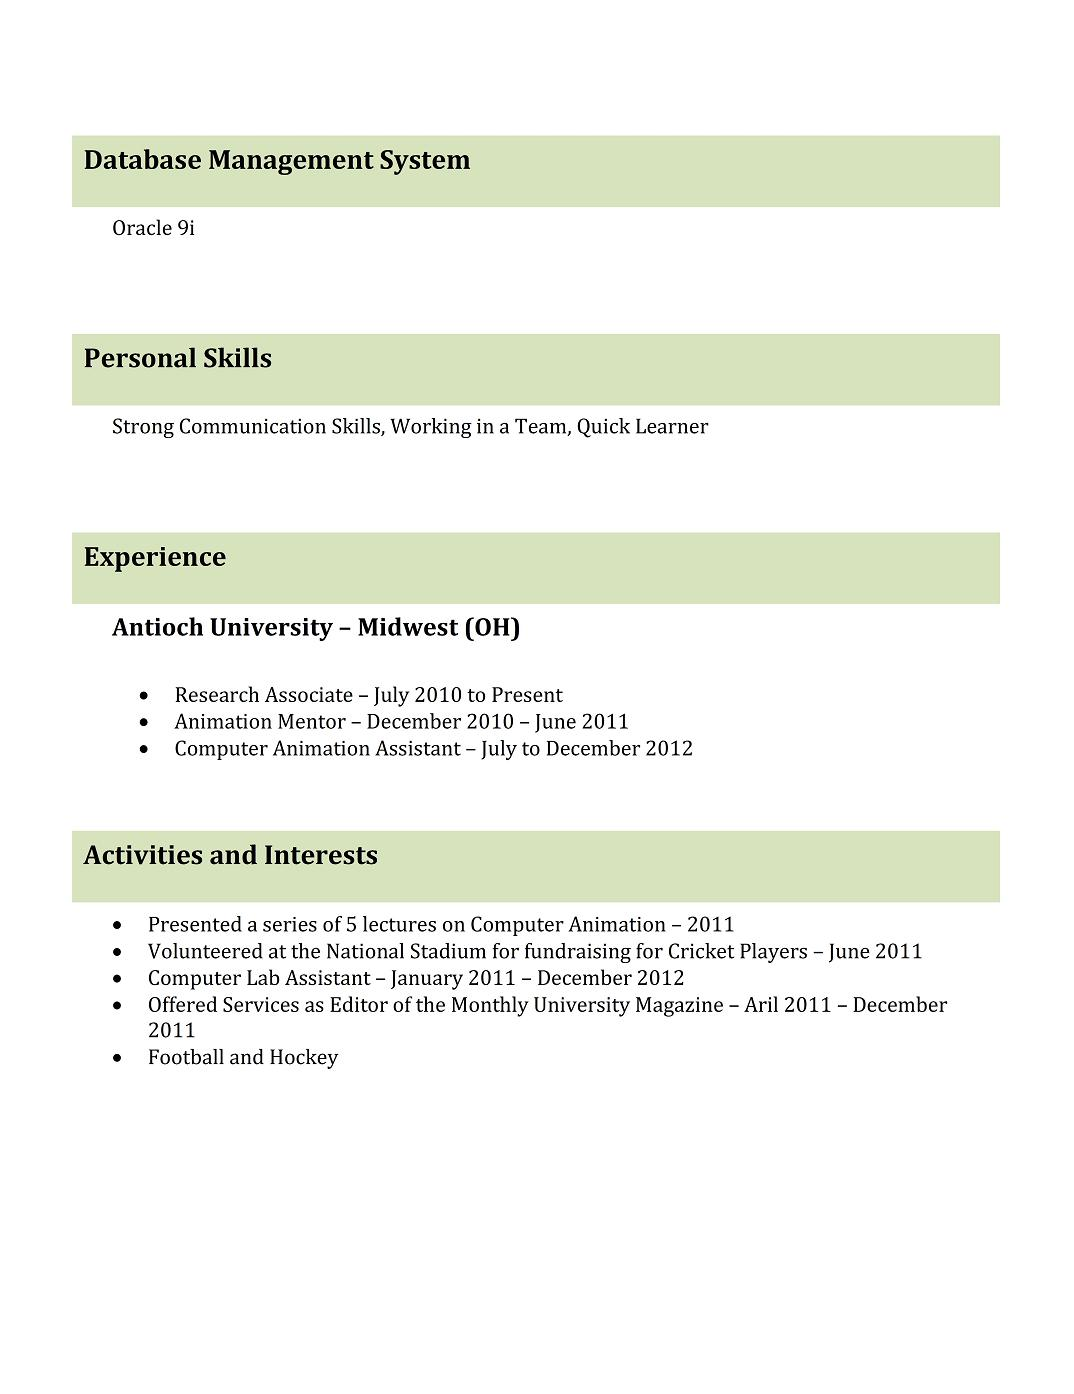 Media Planner Resume Discussion Essay School Uniform Good Topic